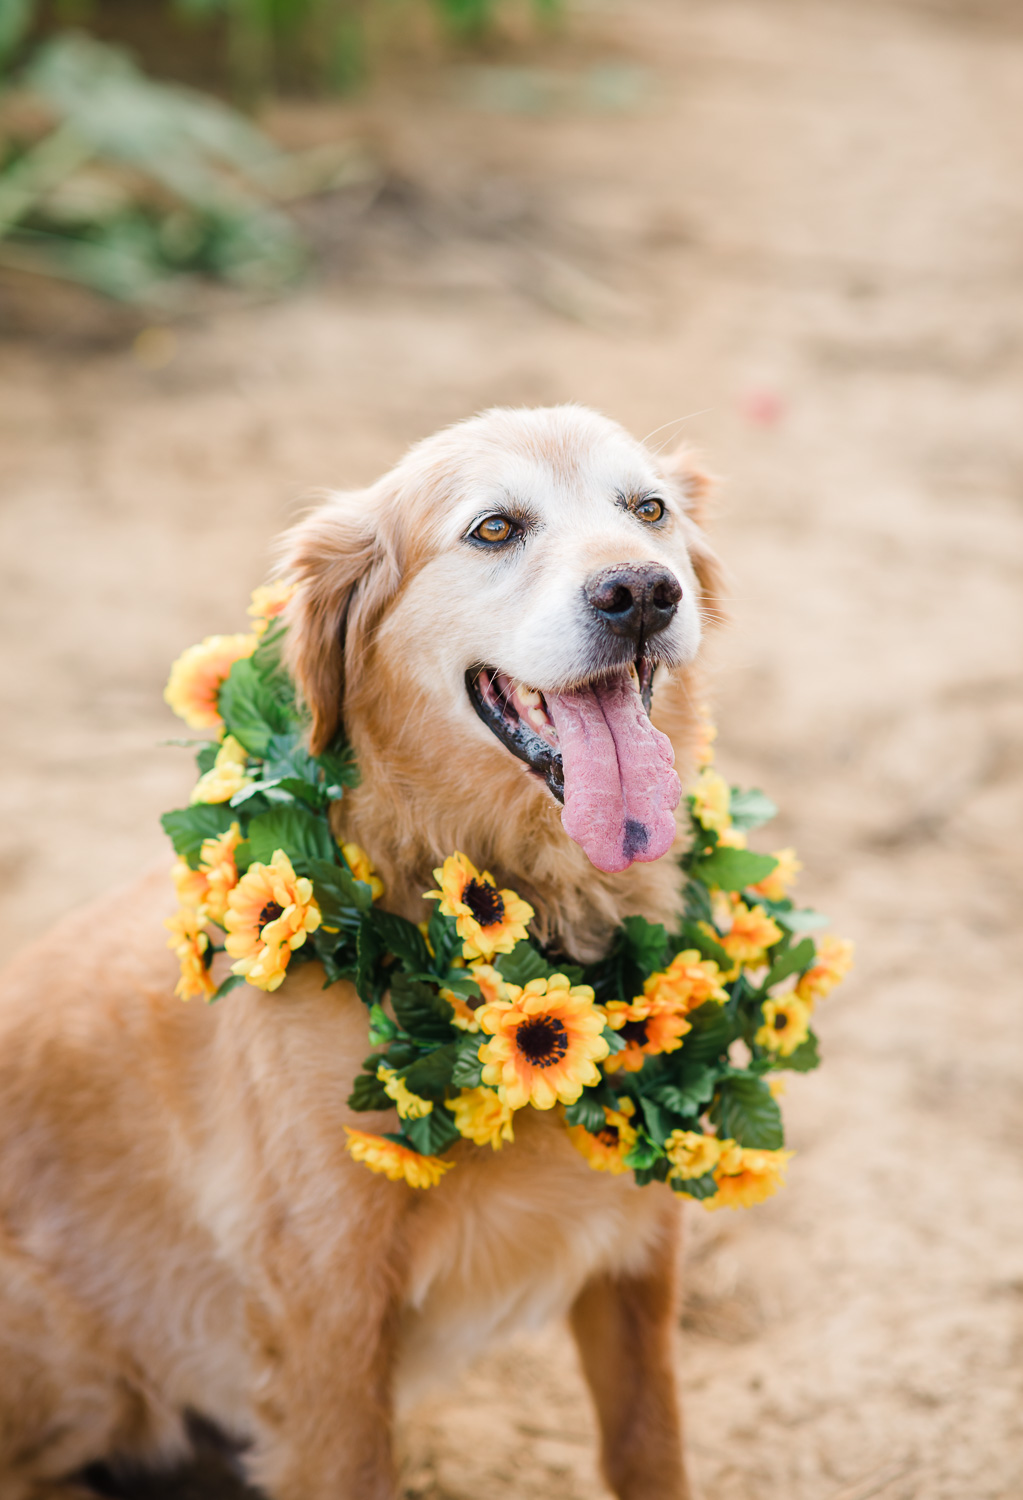 golden retriever wearding sunflower garlend around nect